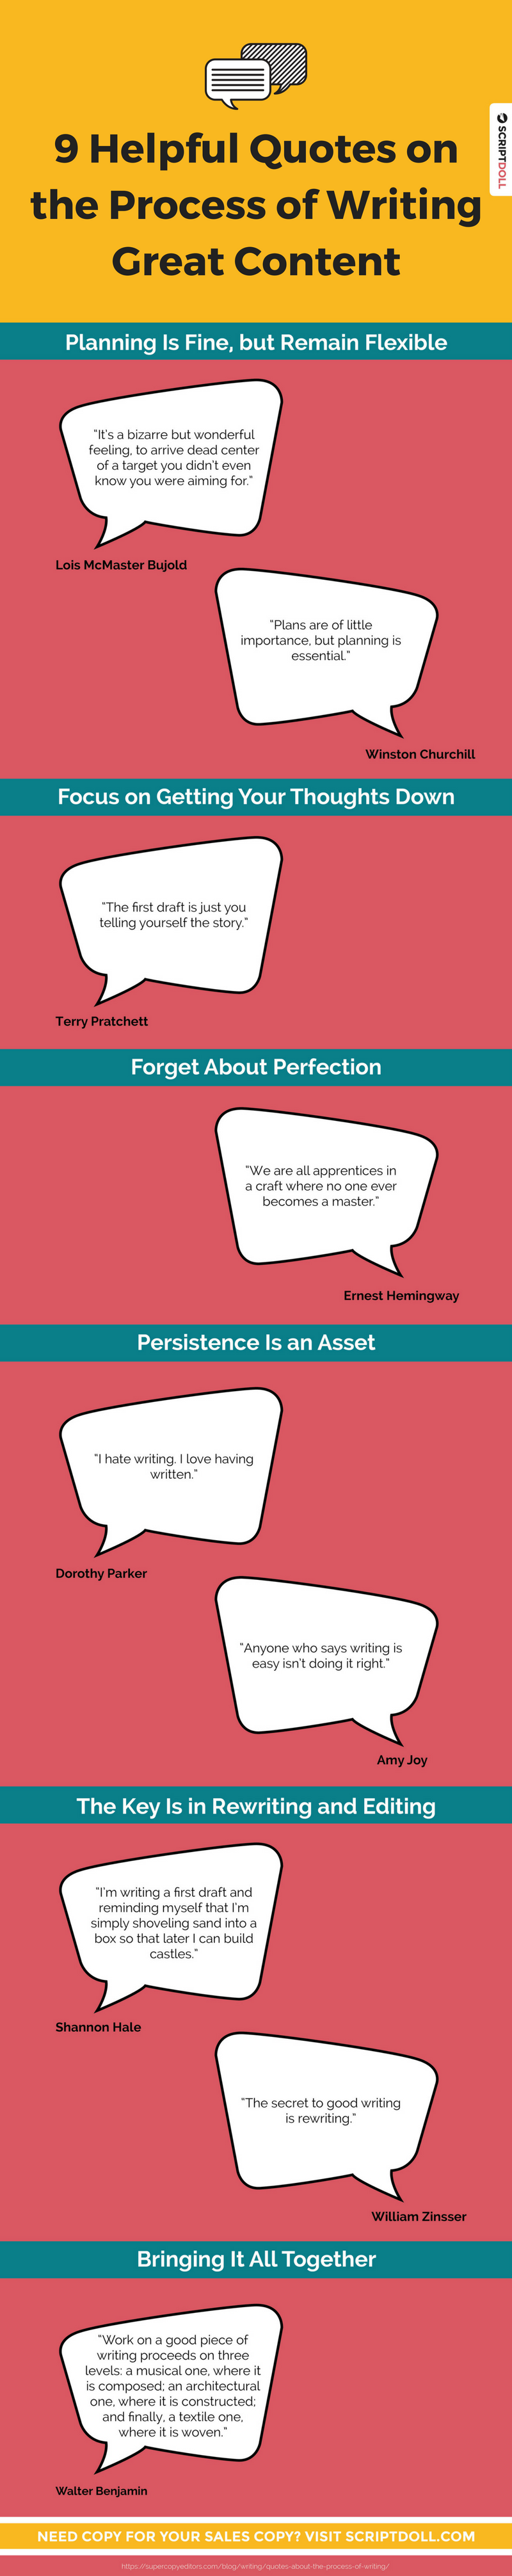 9 helpful quotes on the process of writing great content